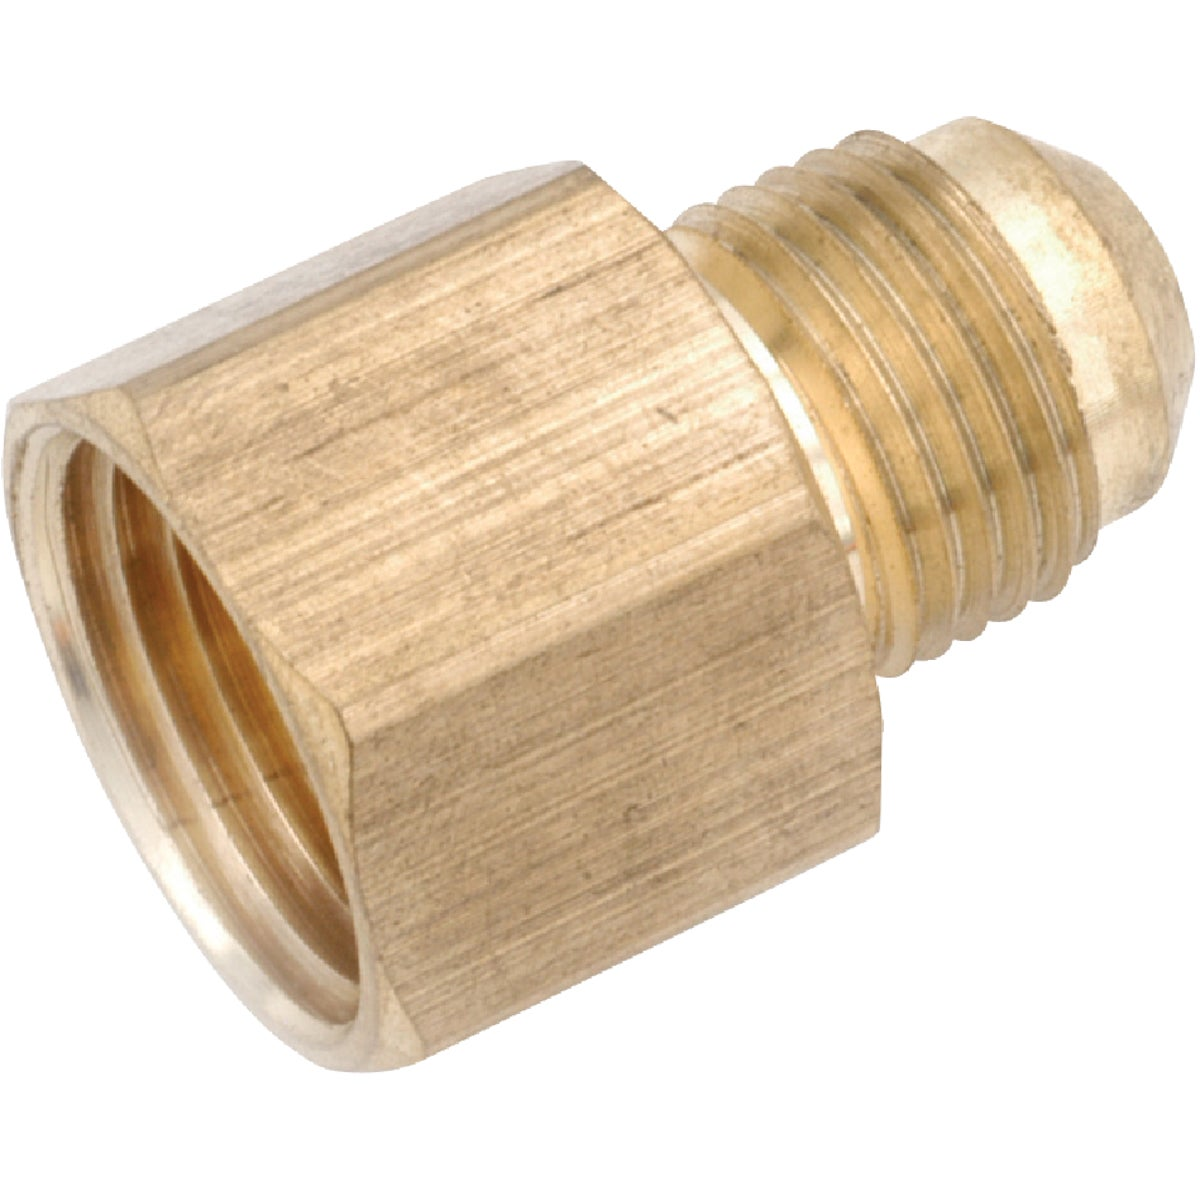 3/8X1/2 FIP CONNECTOR - 754046-0608 by Anderson Metals Corp